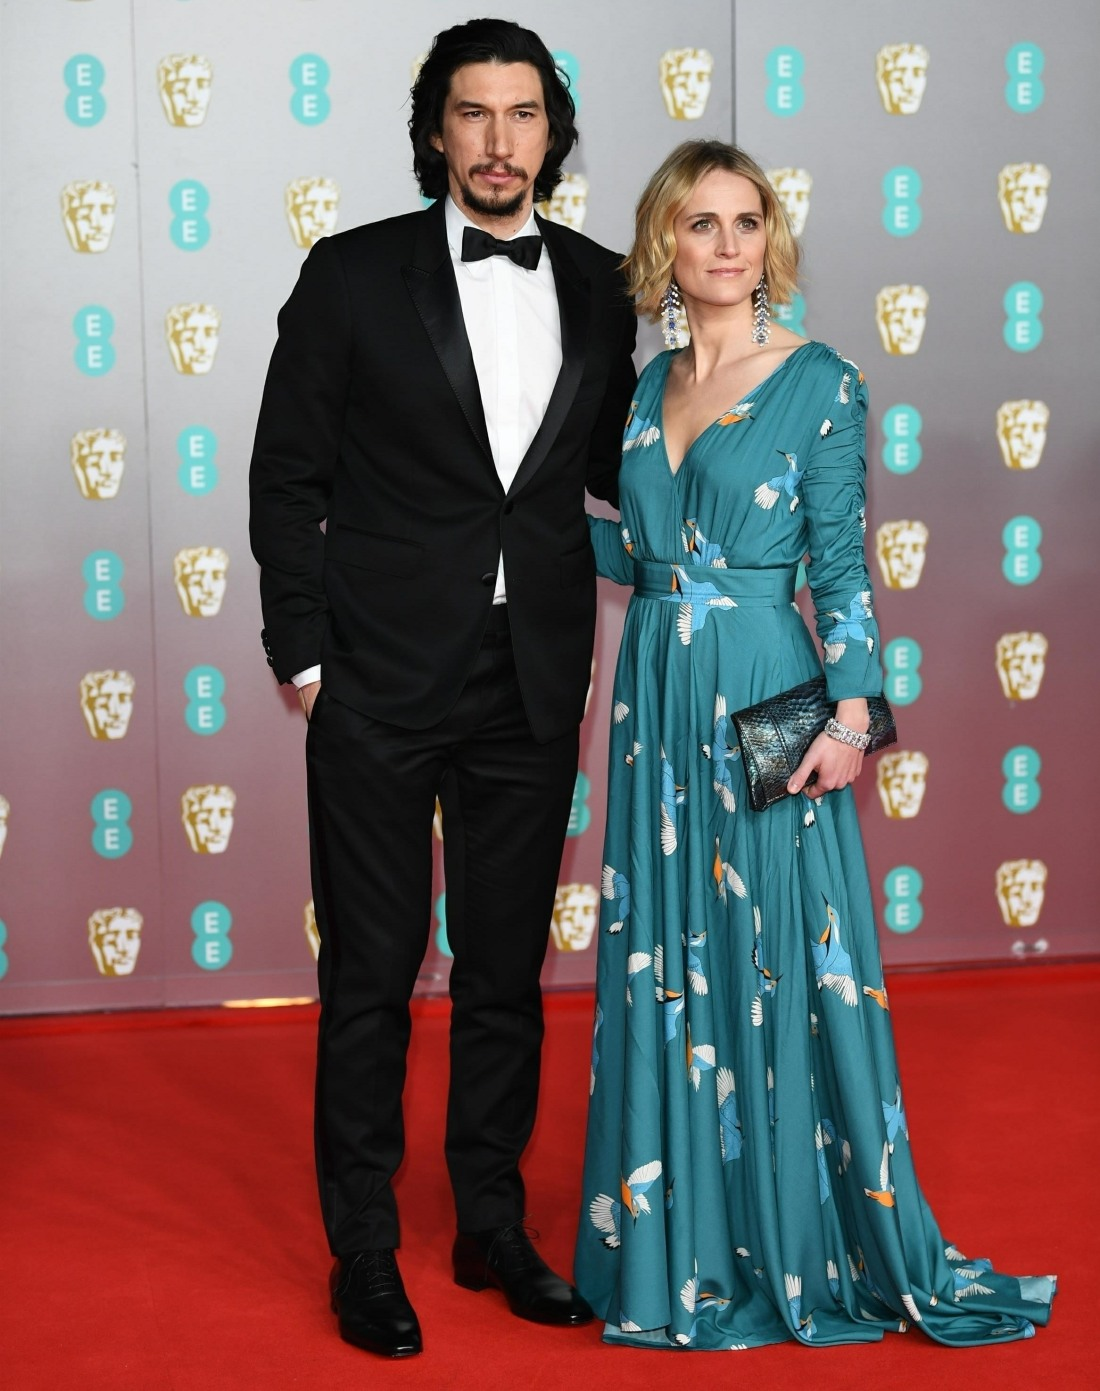 Guests arrive at the EE British Academy Film Awards 2020 at Royal Albert Hall